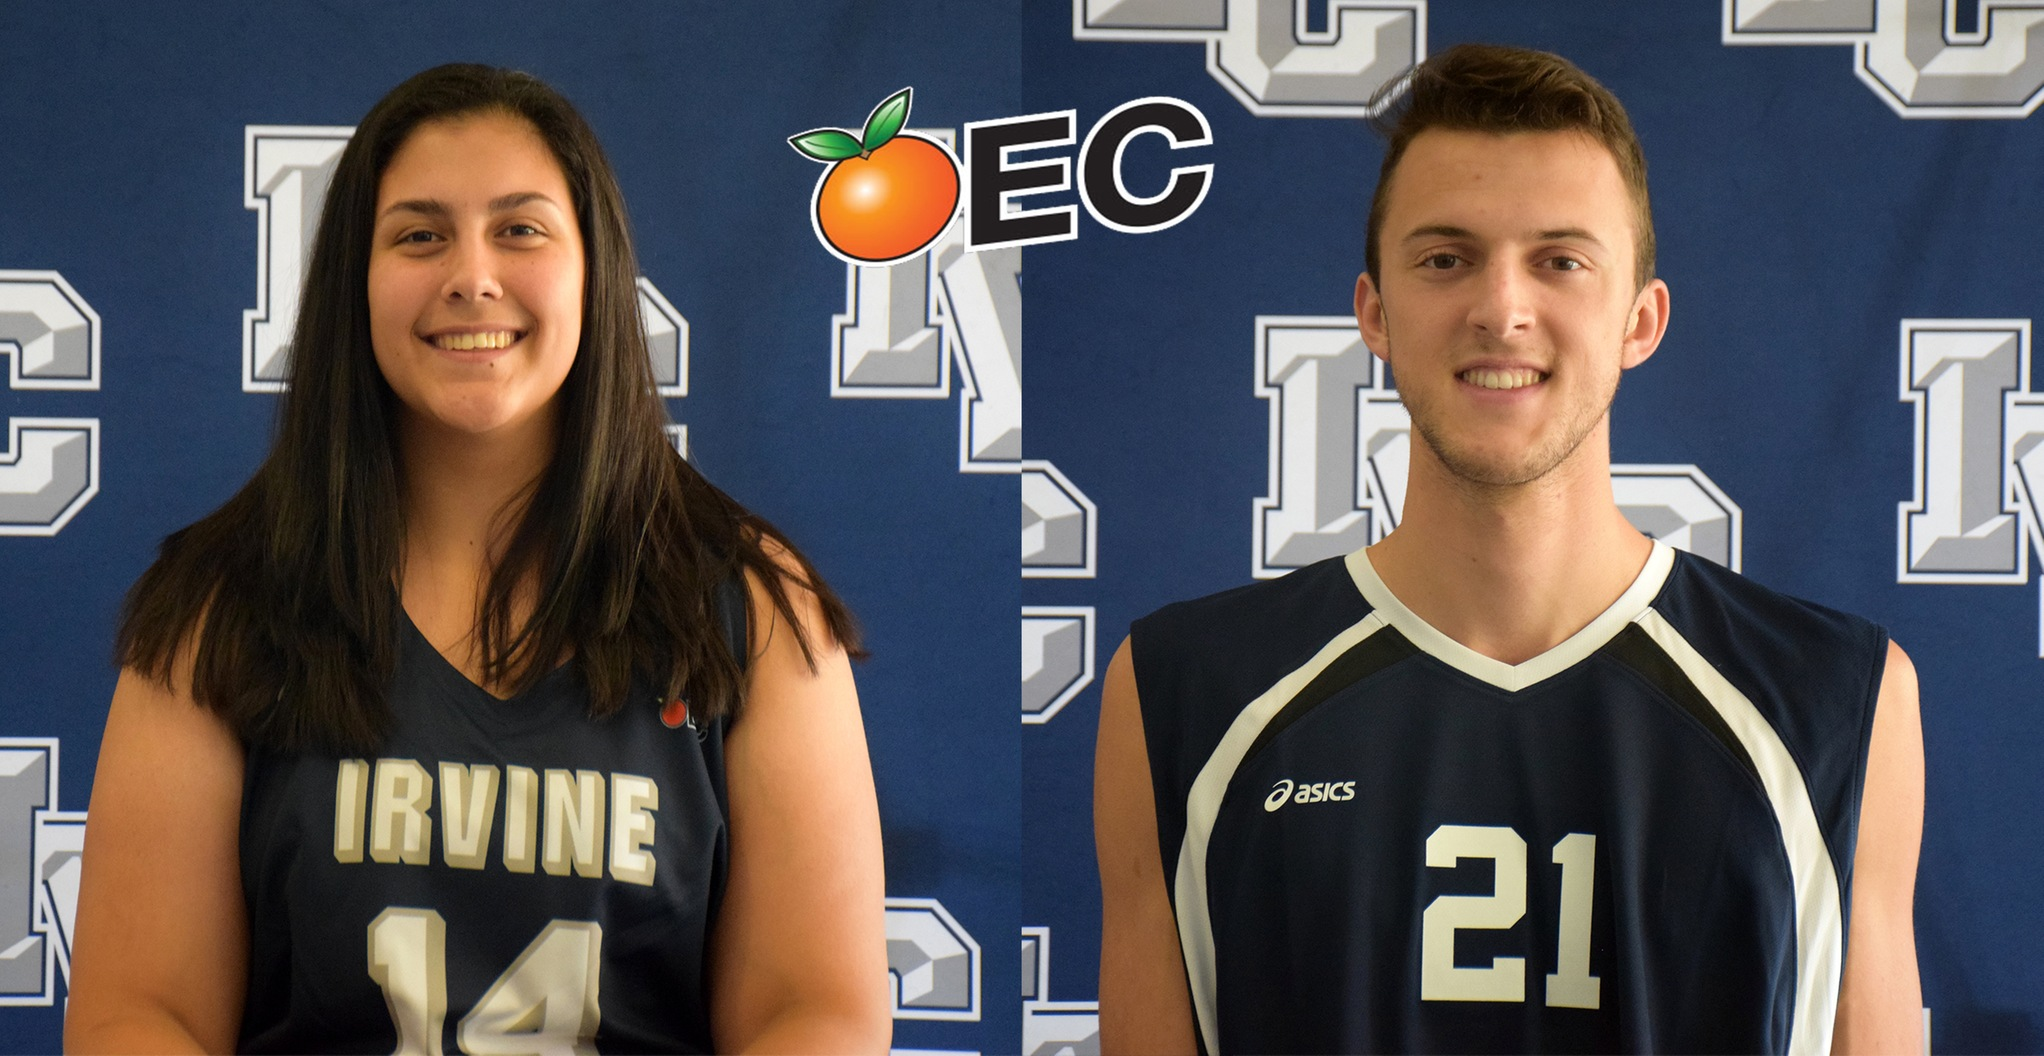 Dillon, Marocchi named Champion of Character award winners